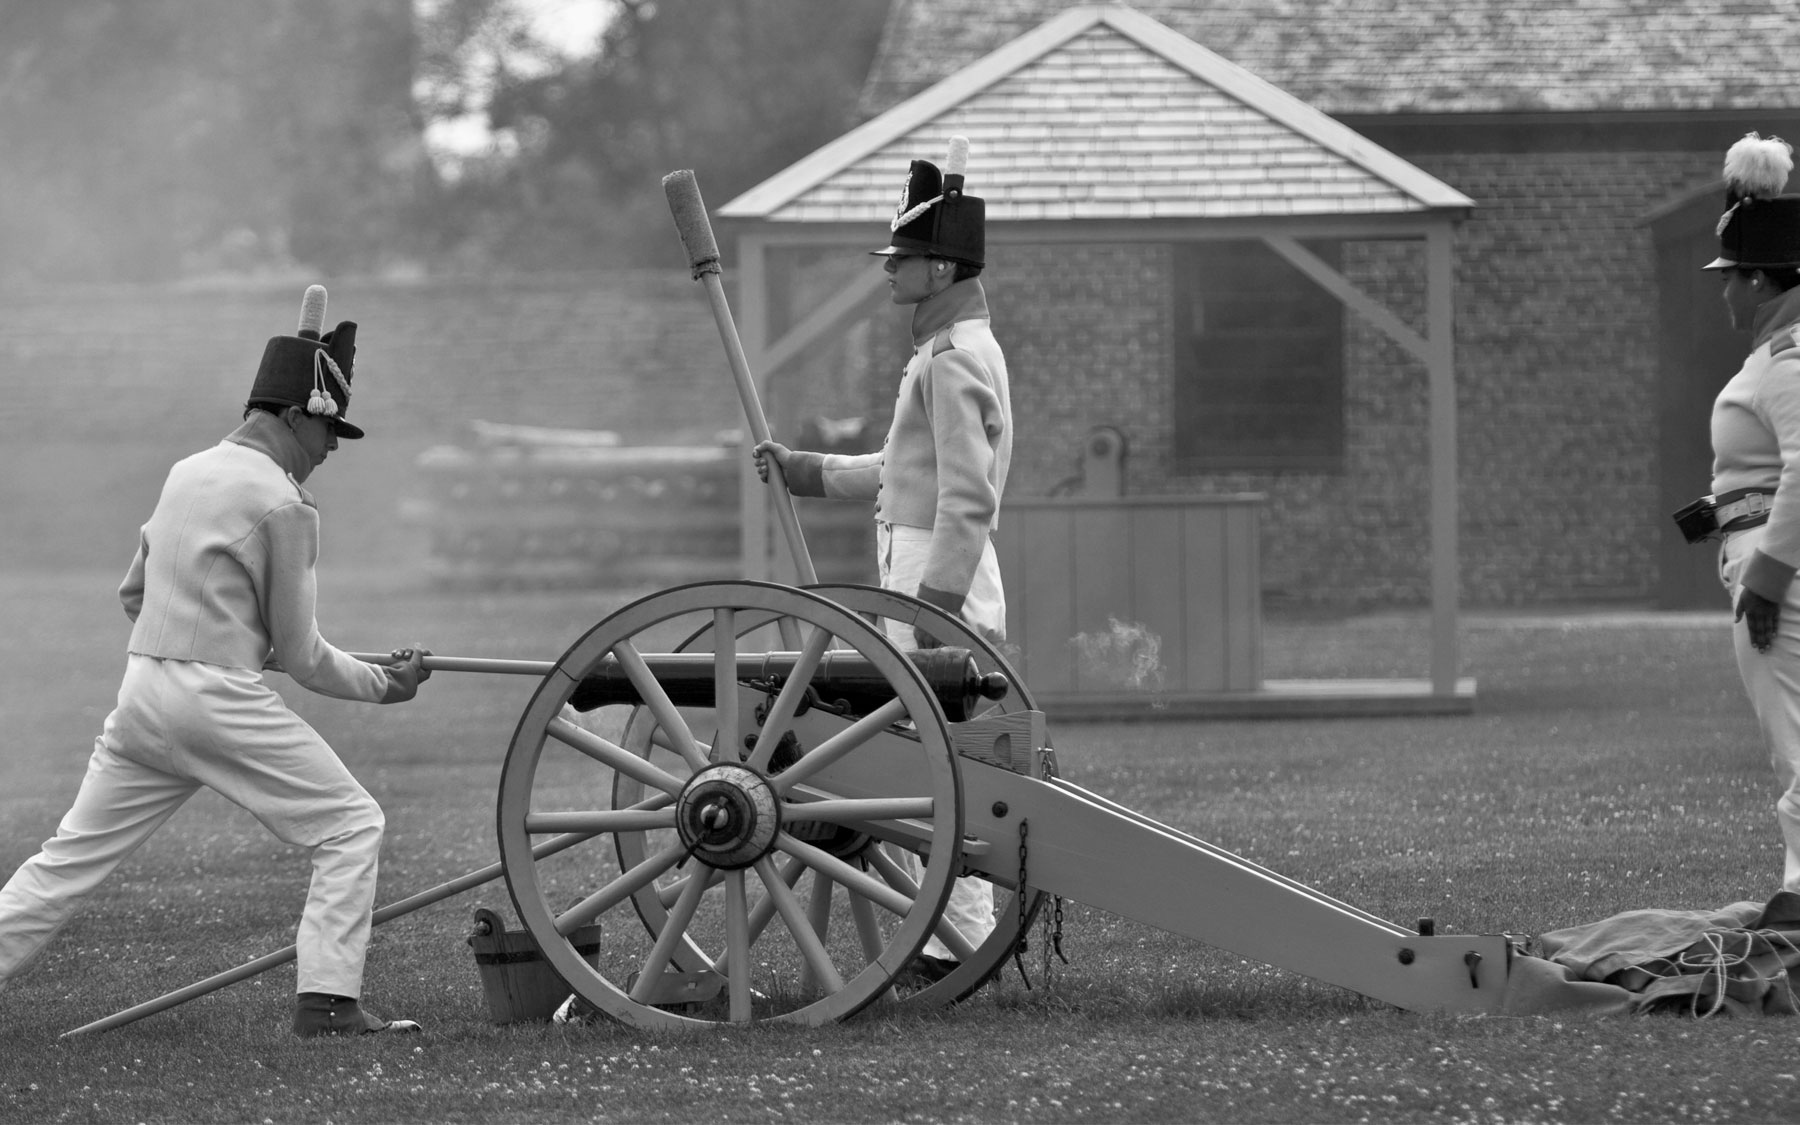 Re-enactment at Fort York National Historic Site, 2010.